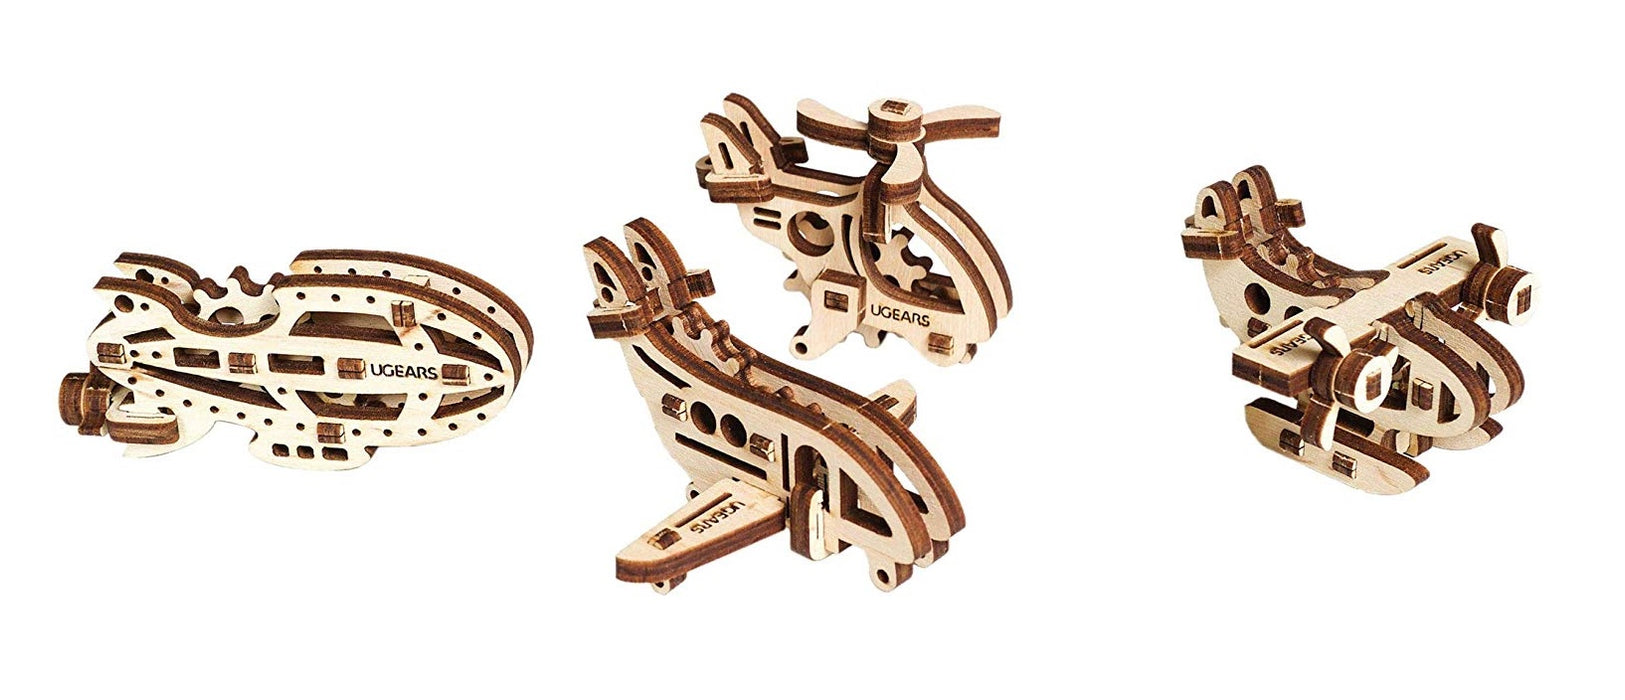 UGears 502152 U-Fidget Aircraft 3D Puzzle Model, Wood